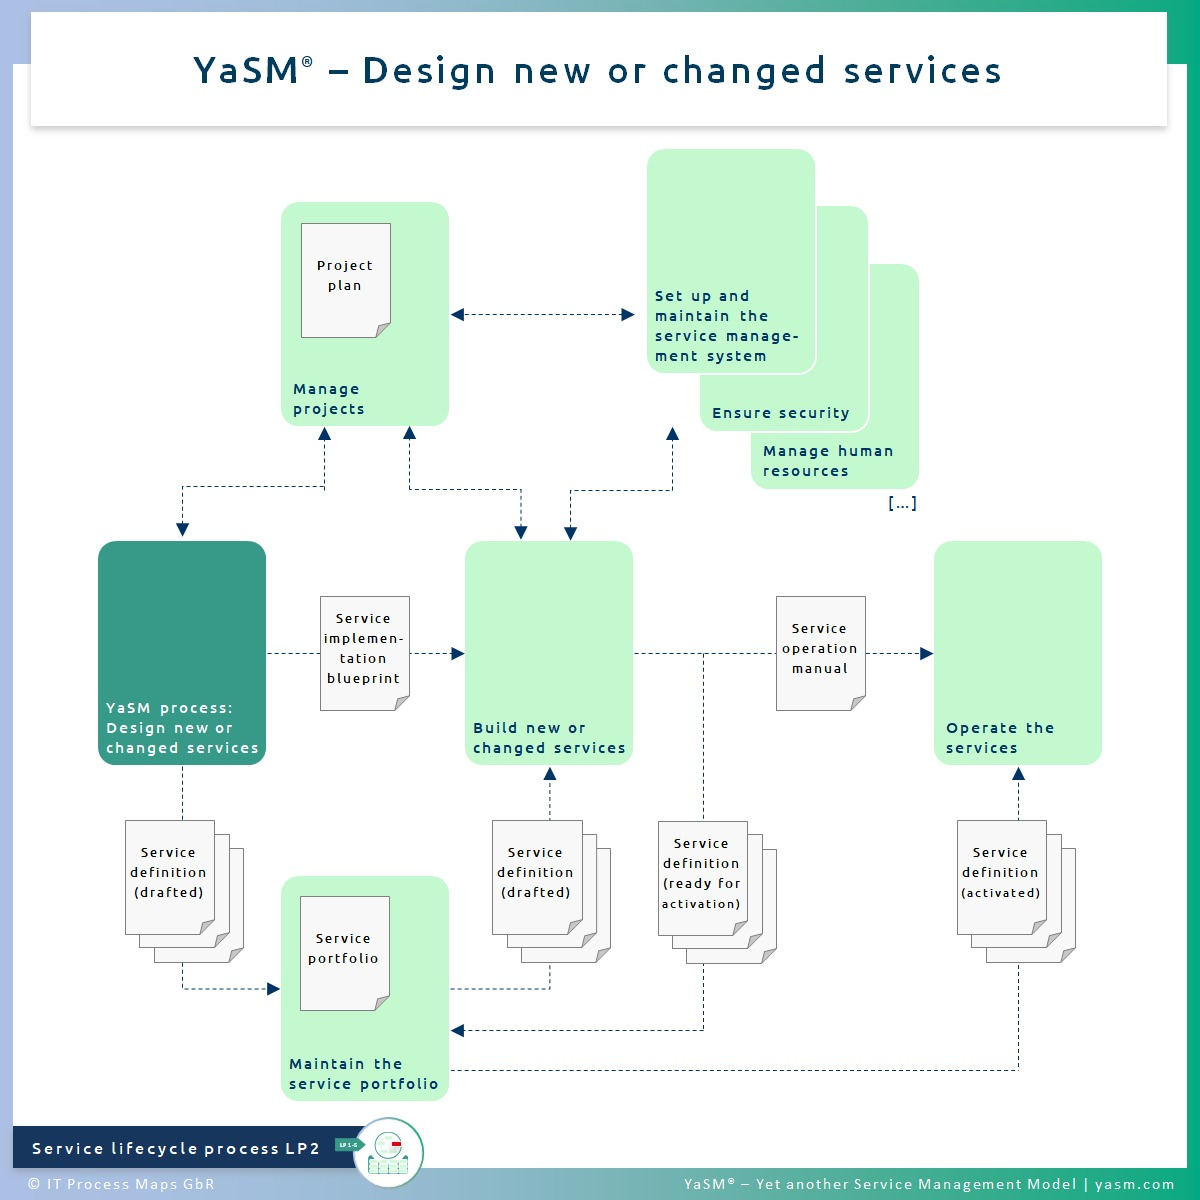 Fig. 1: Design new or changed services. - YaSM service design process LP2. - Related with: Practice of ITIL 4 service design.